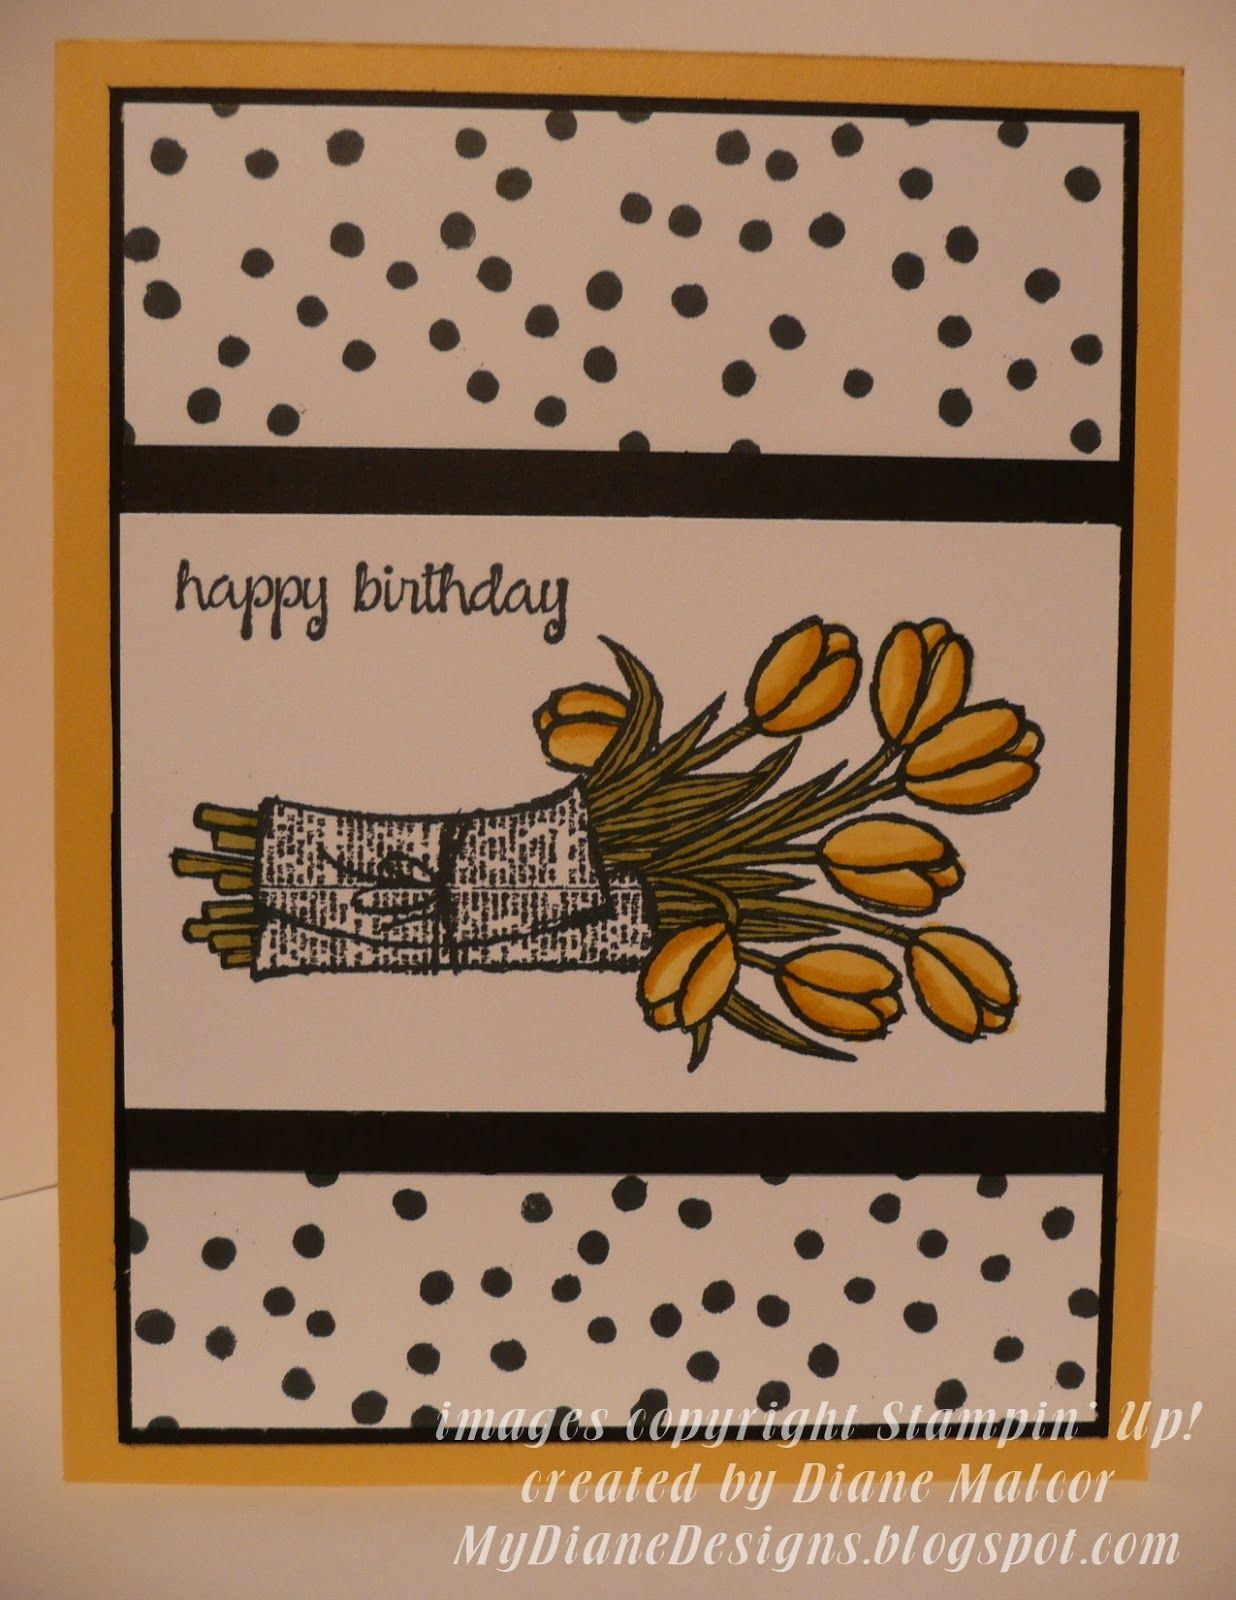 More Birthday Kindness - http://mydianedesigns.blogspot.com/, Love is Kindness, And Many More, Endless Birthday Wishes, Stampin' Up!